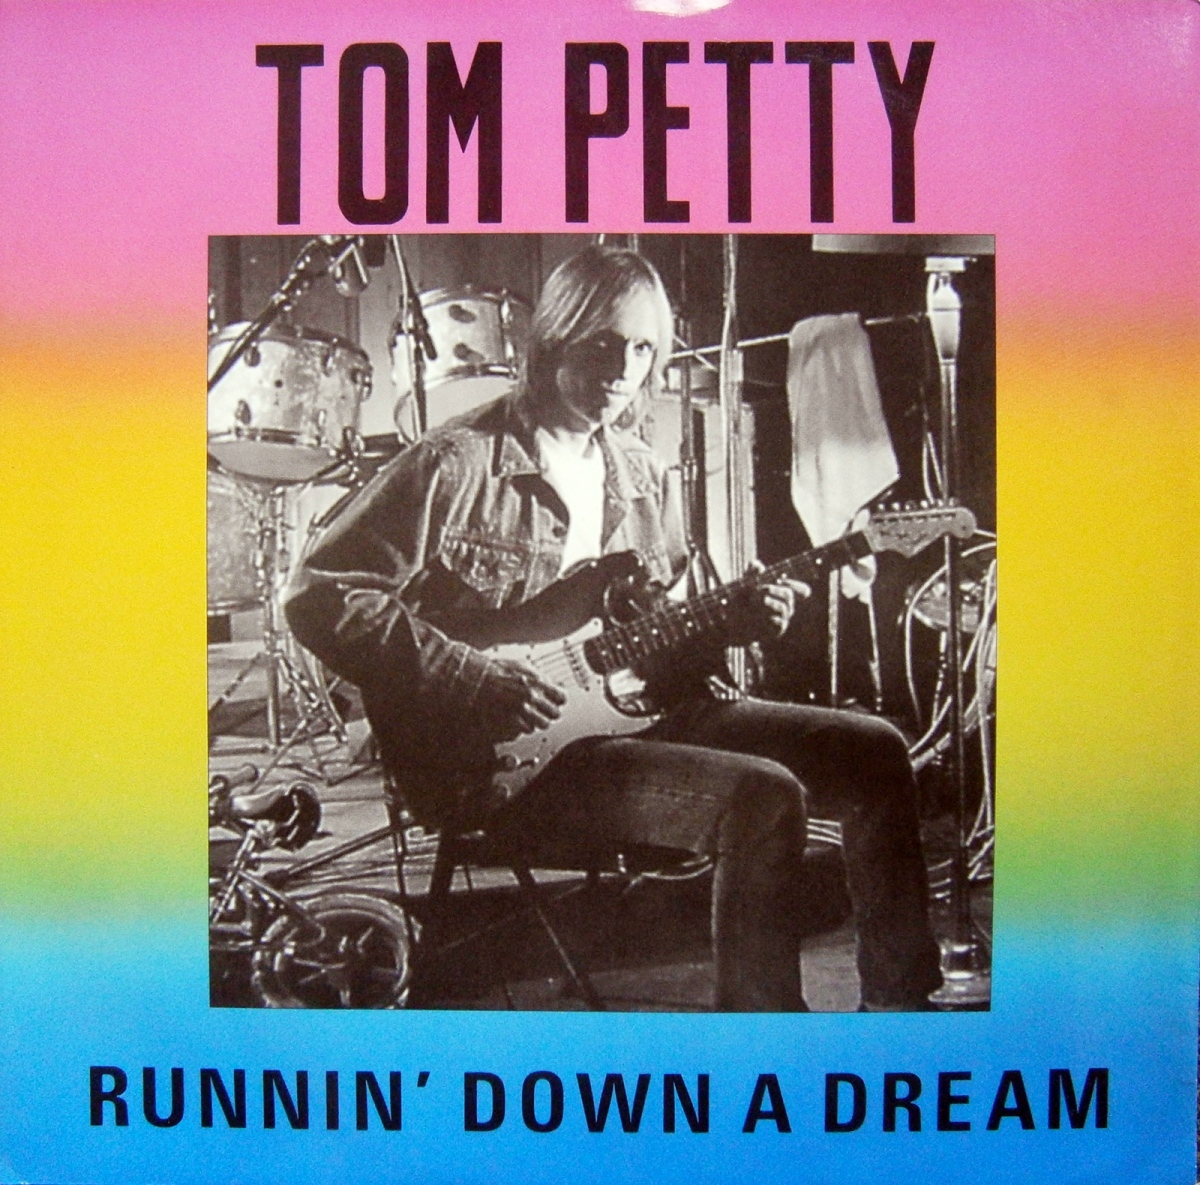 Tom Petty – Running Down a Dream  … Full Moon Fever Week